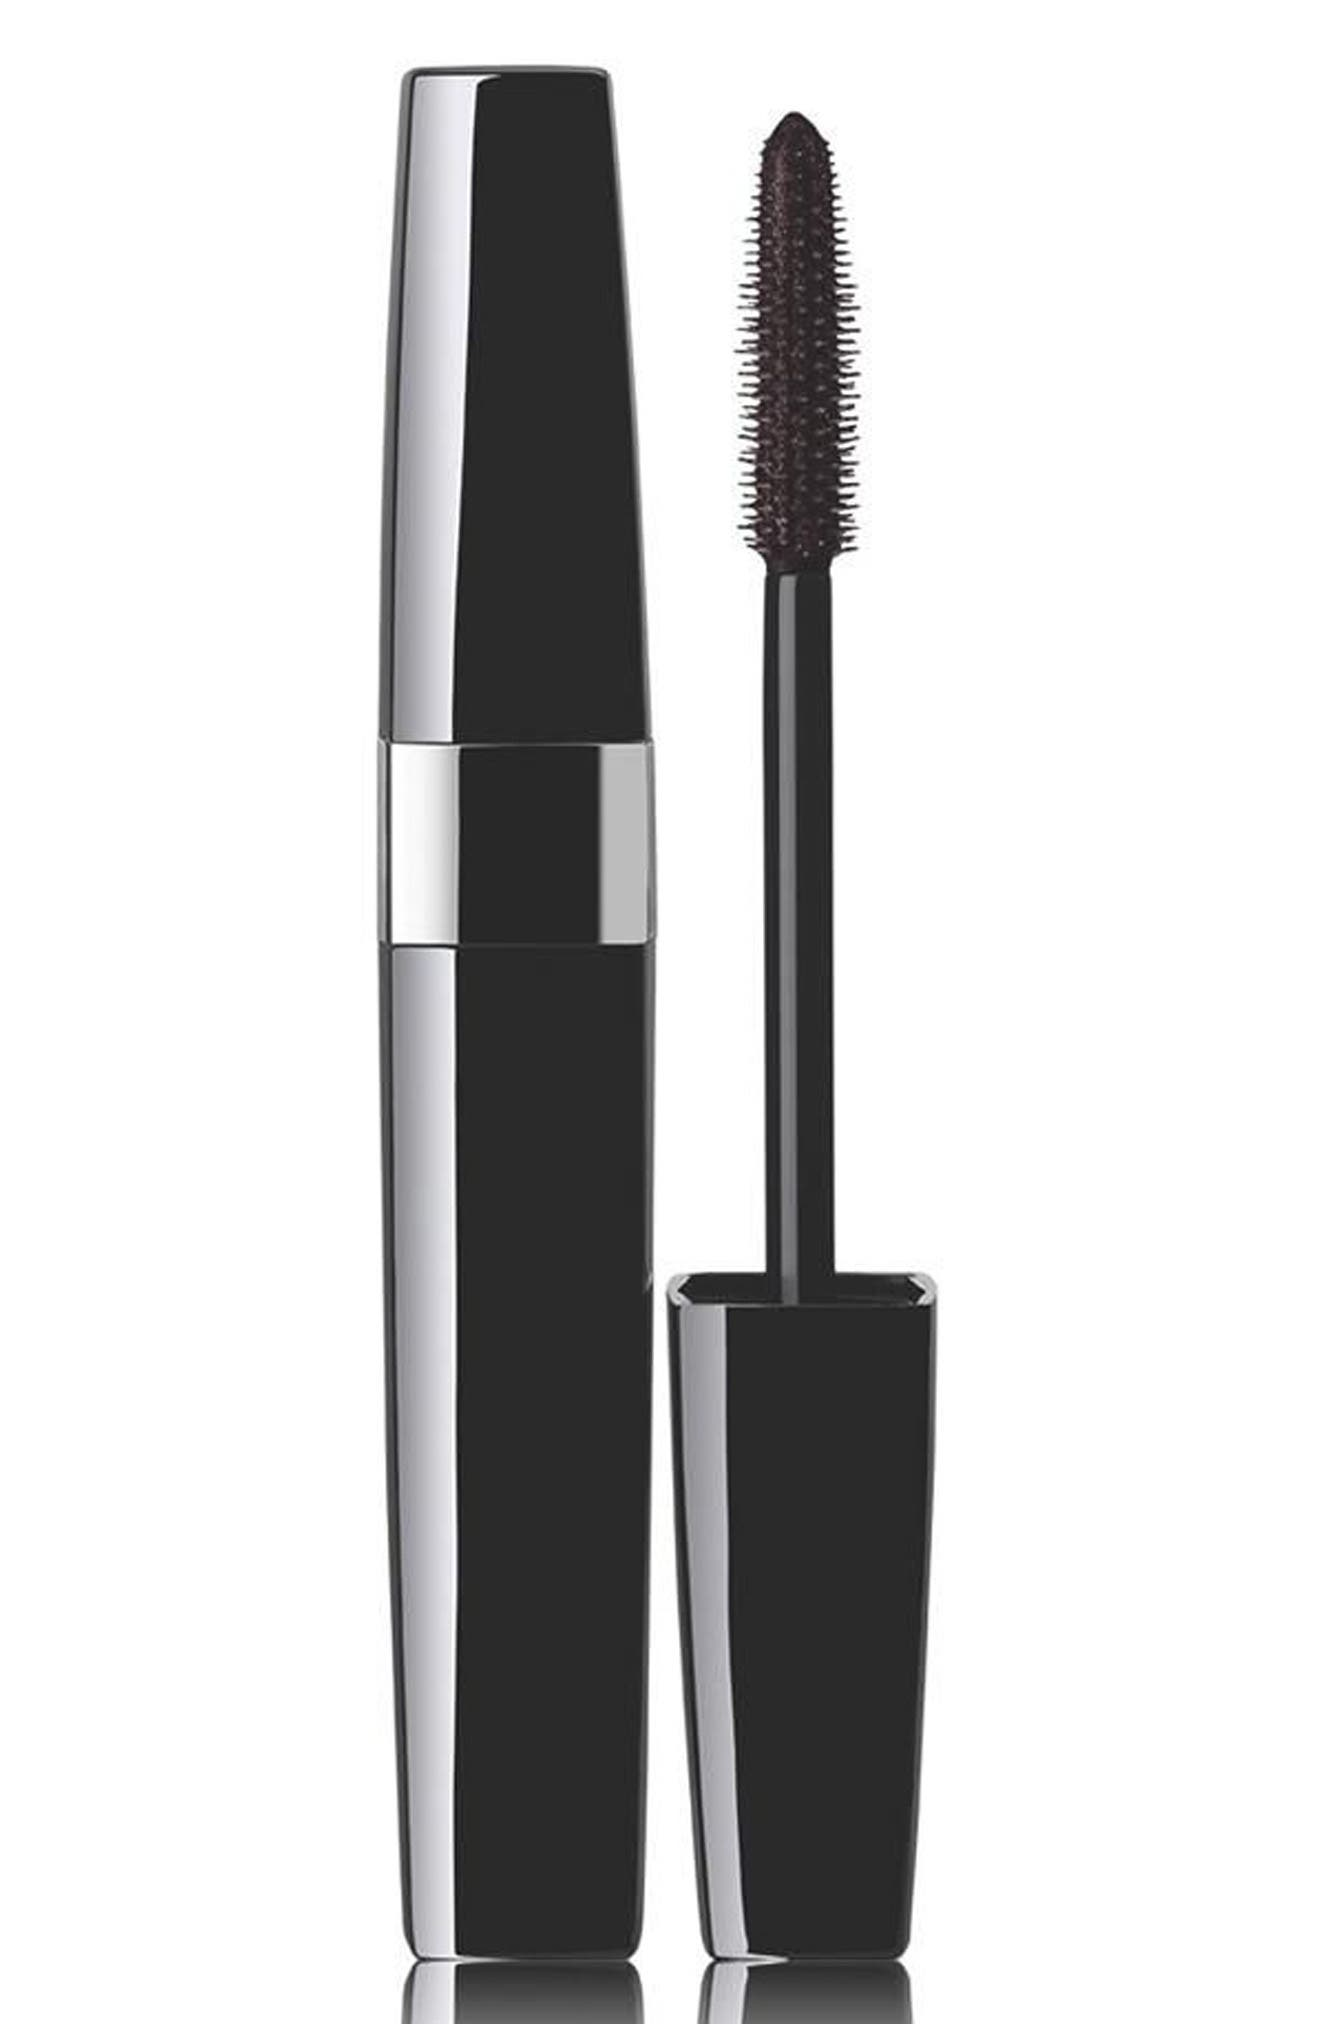 INIMITABLE INTENSE Mascara Multi-Dimensionnel Sophistiqué,                         Main,                         color, 20 Brun